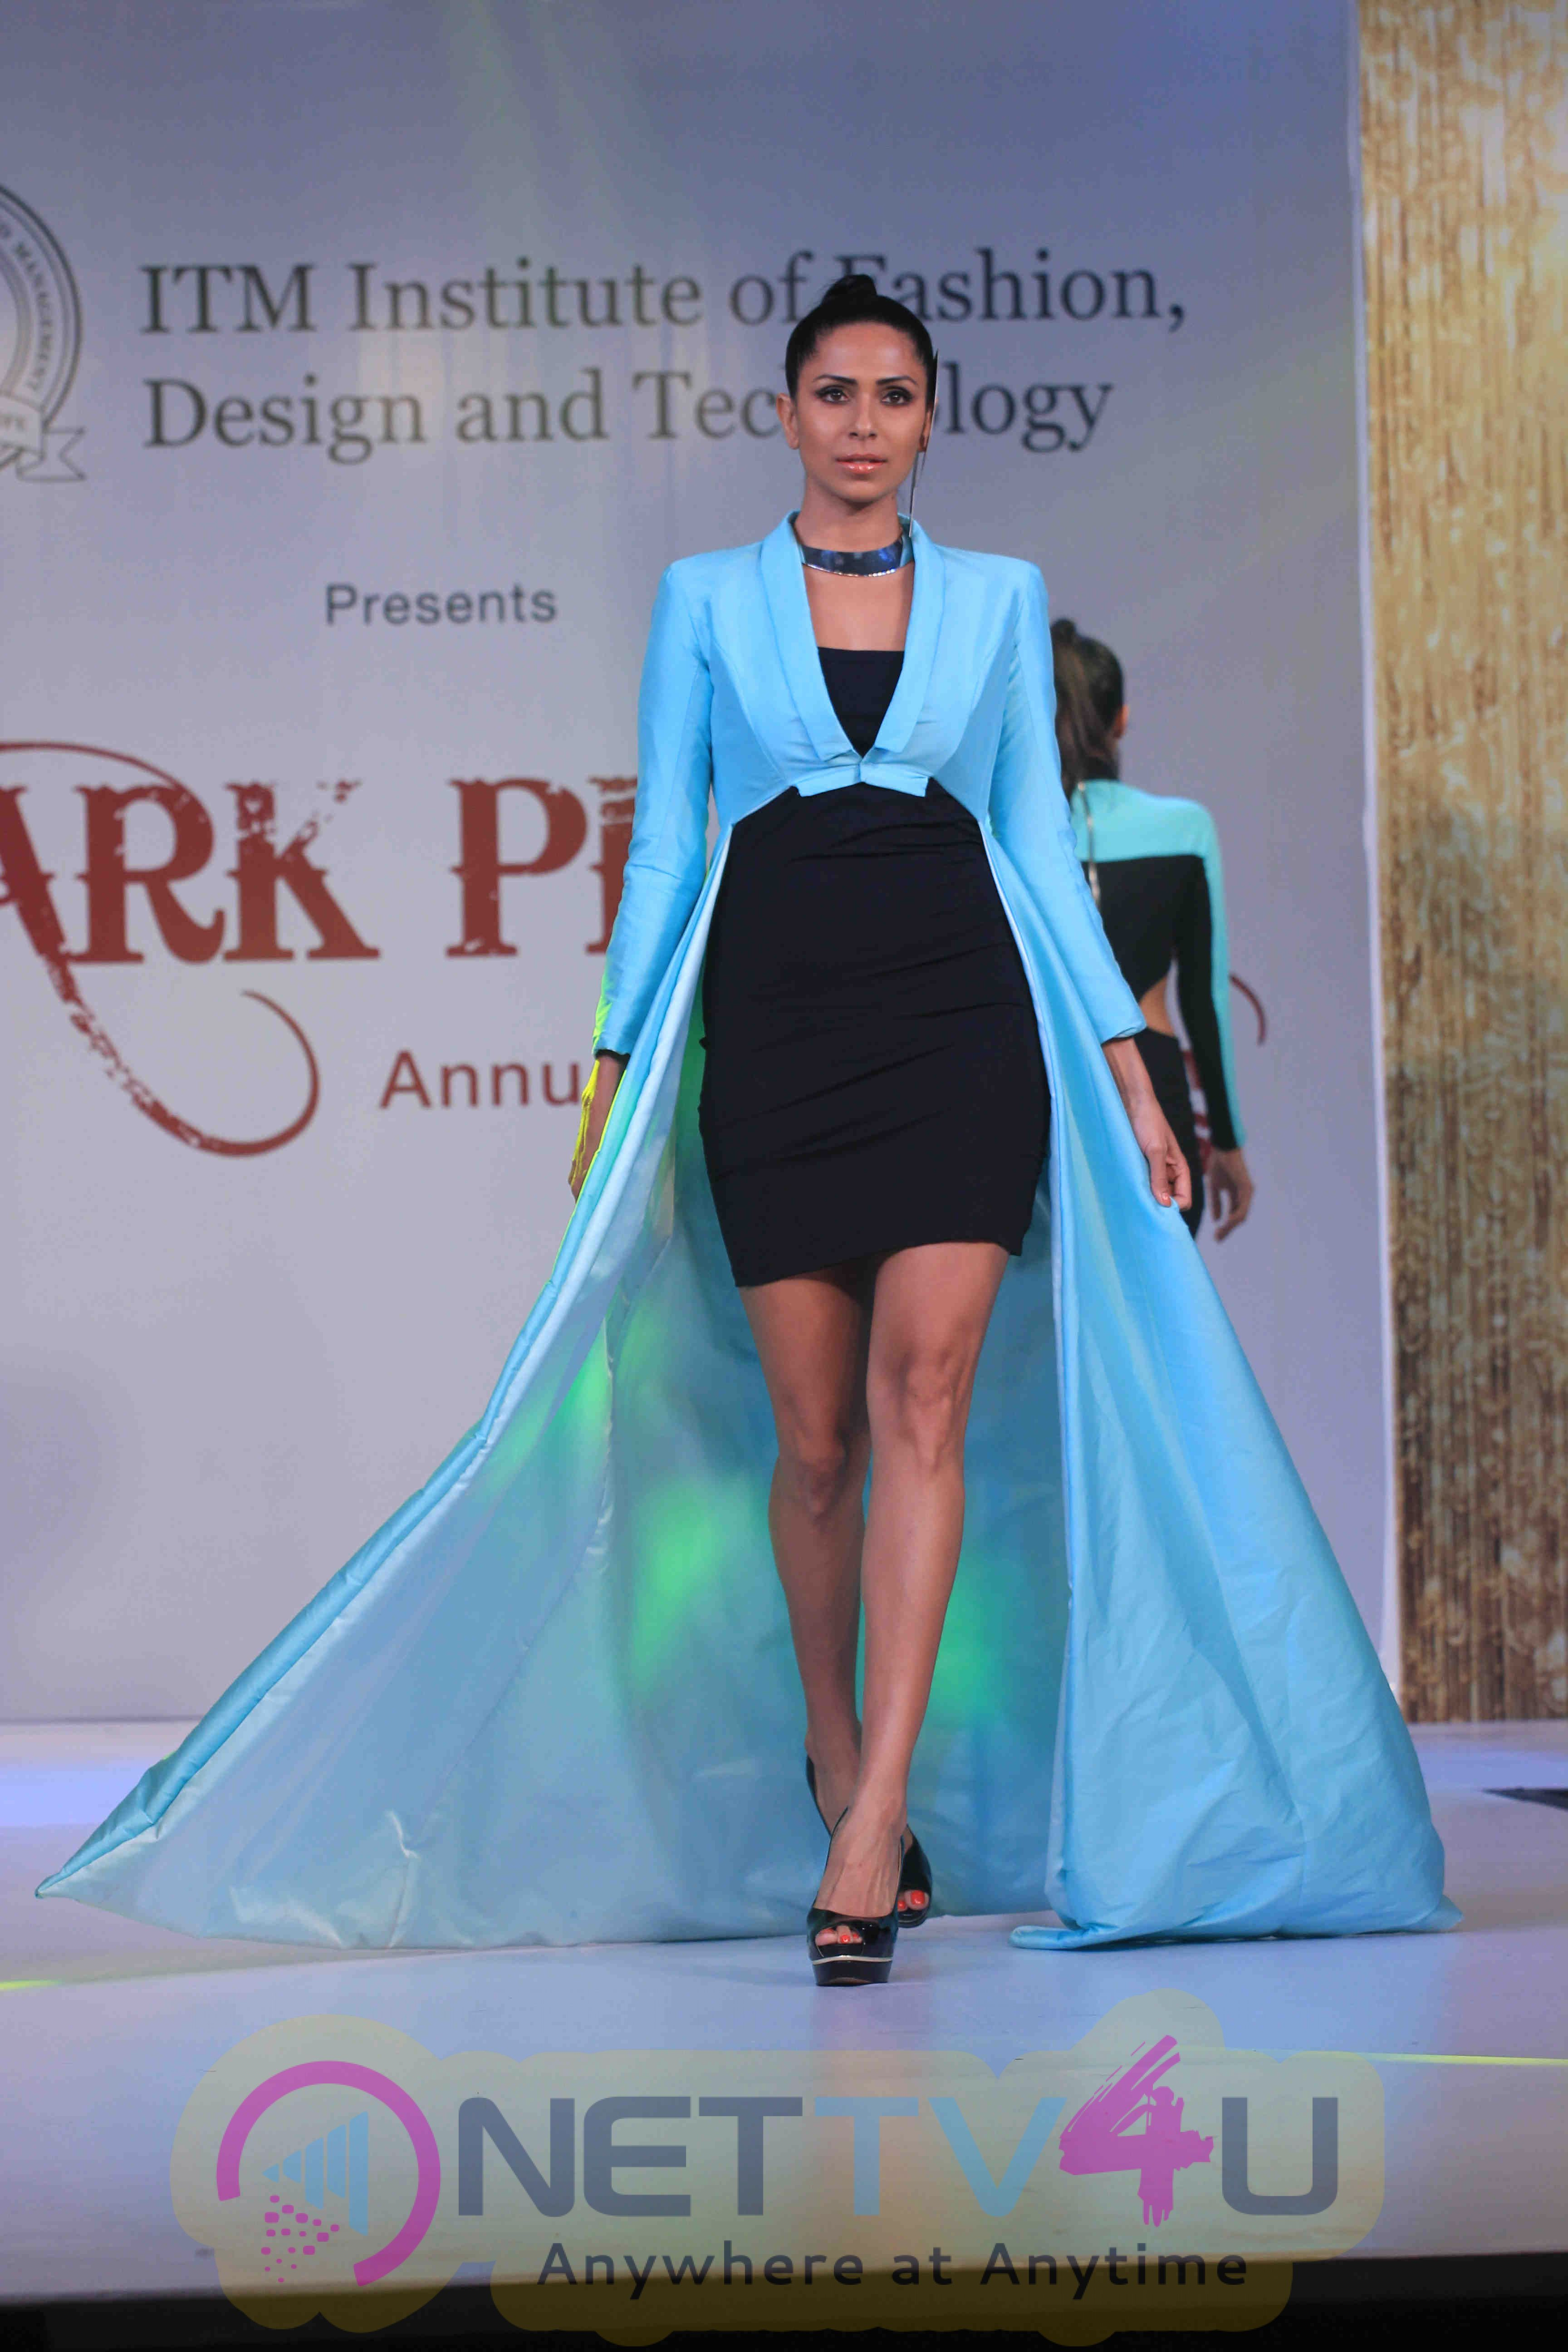 ITM Institute Of Fashion, Design And Technology Invites You To Spark Plug Annual Design Show Good Looking Stills